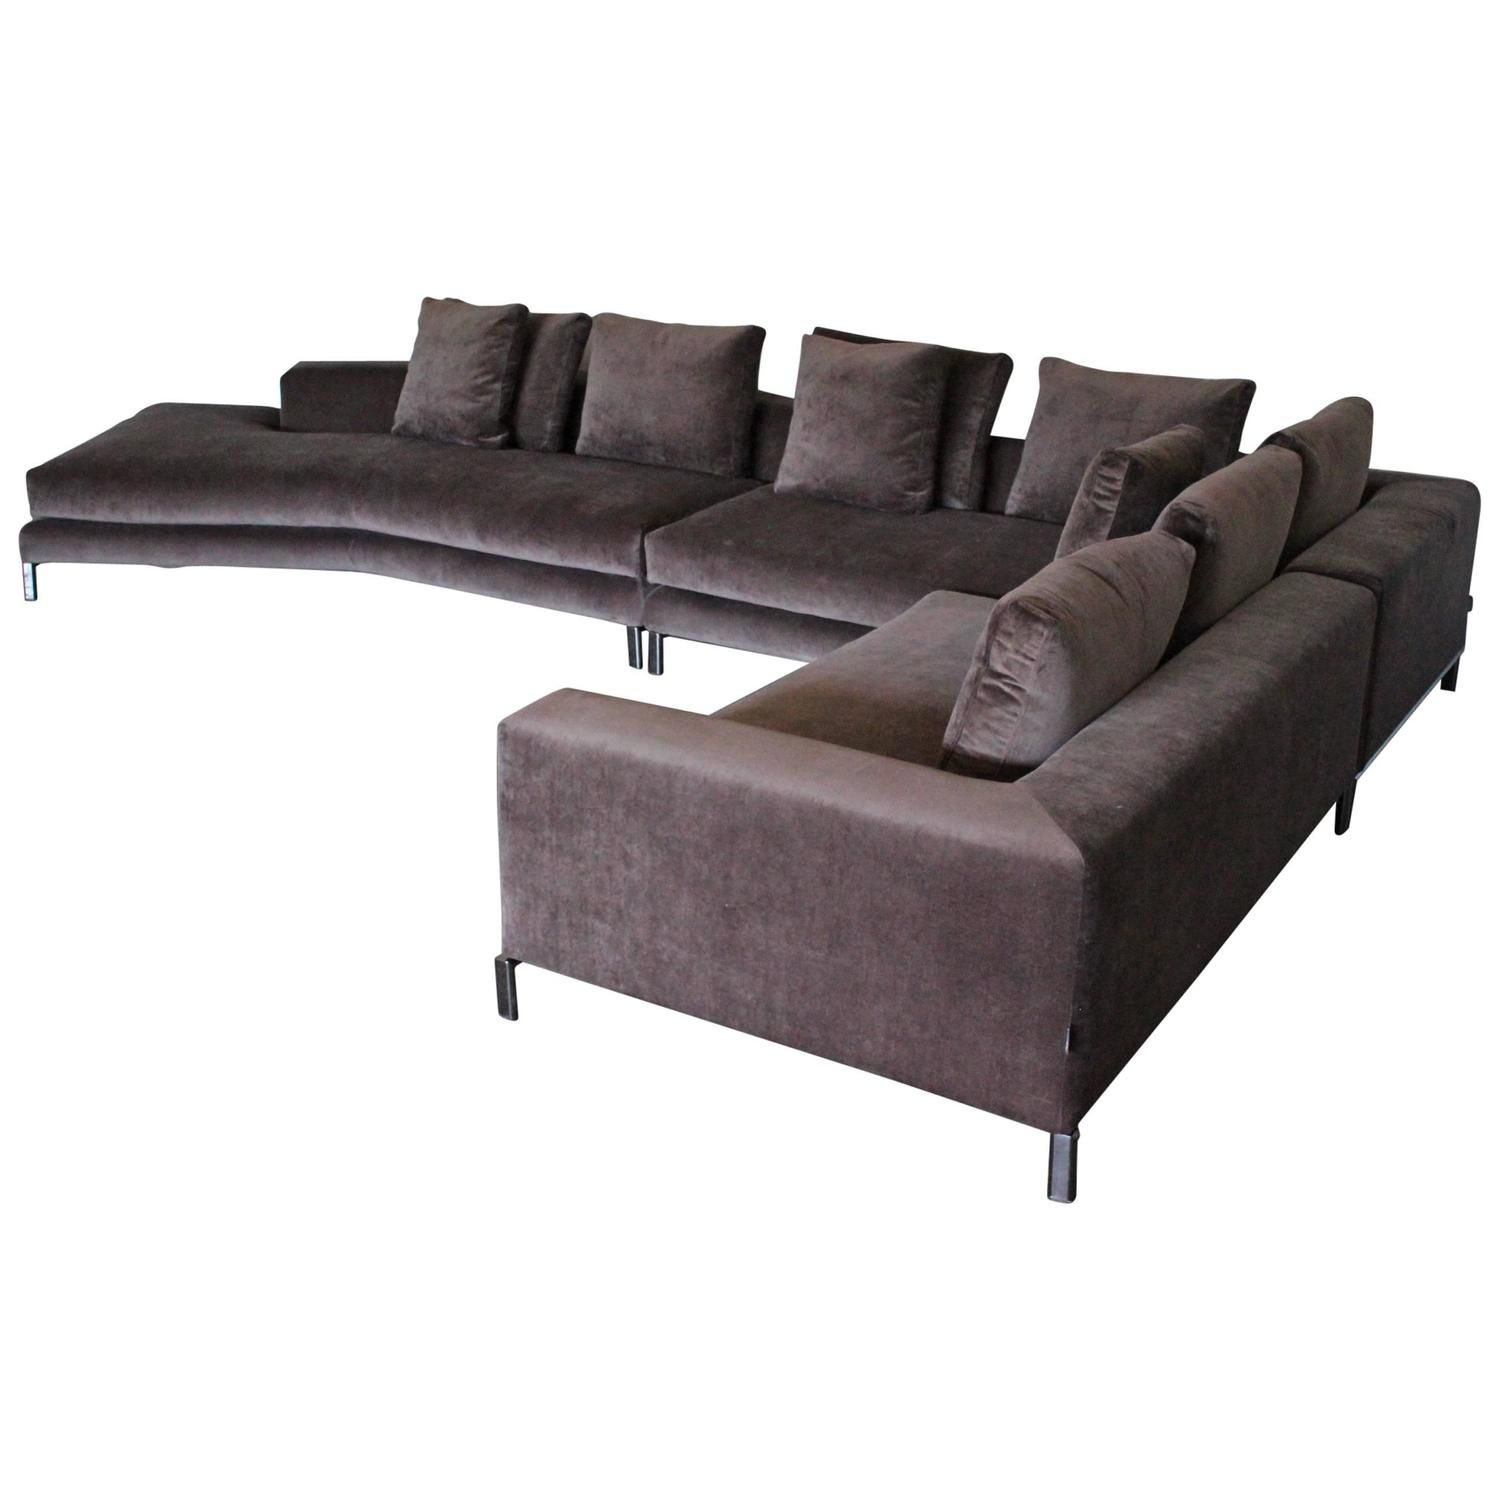 "Minotti ""Allen"" Sectional L Shape Sofa in Taupe Brown Velvet by"